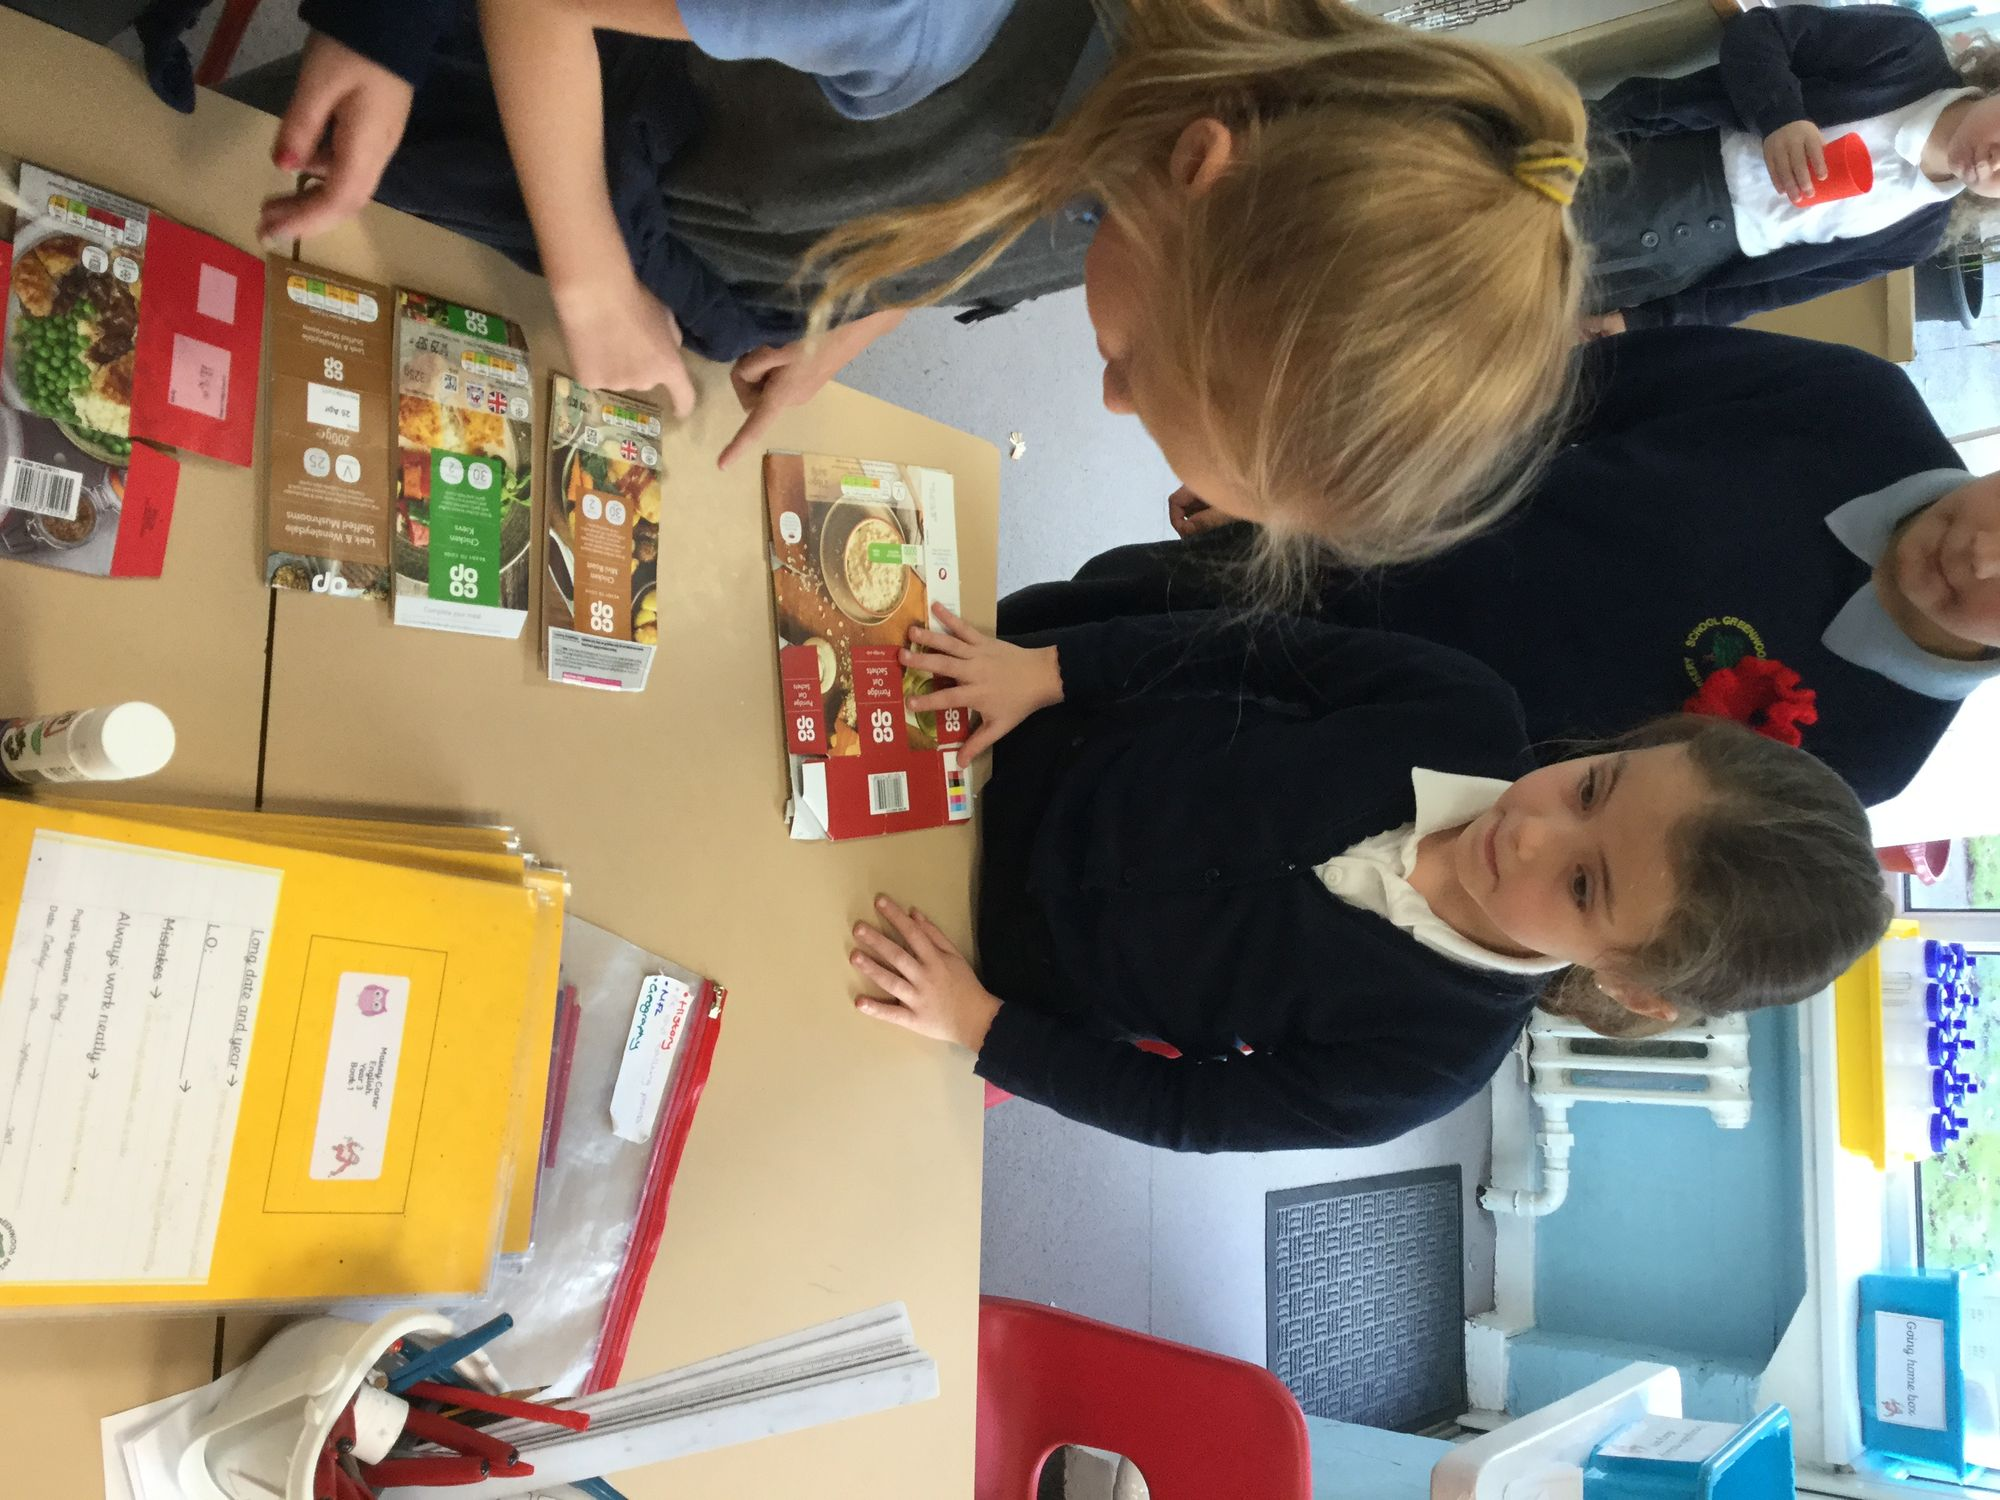 Learning about food choices in a fun way